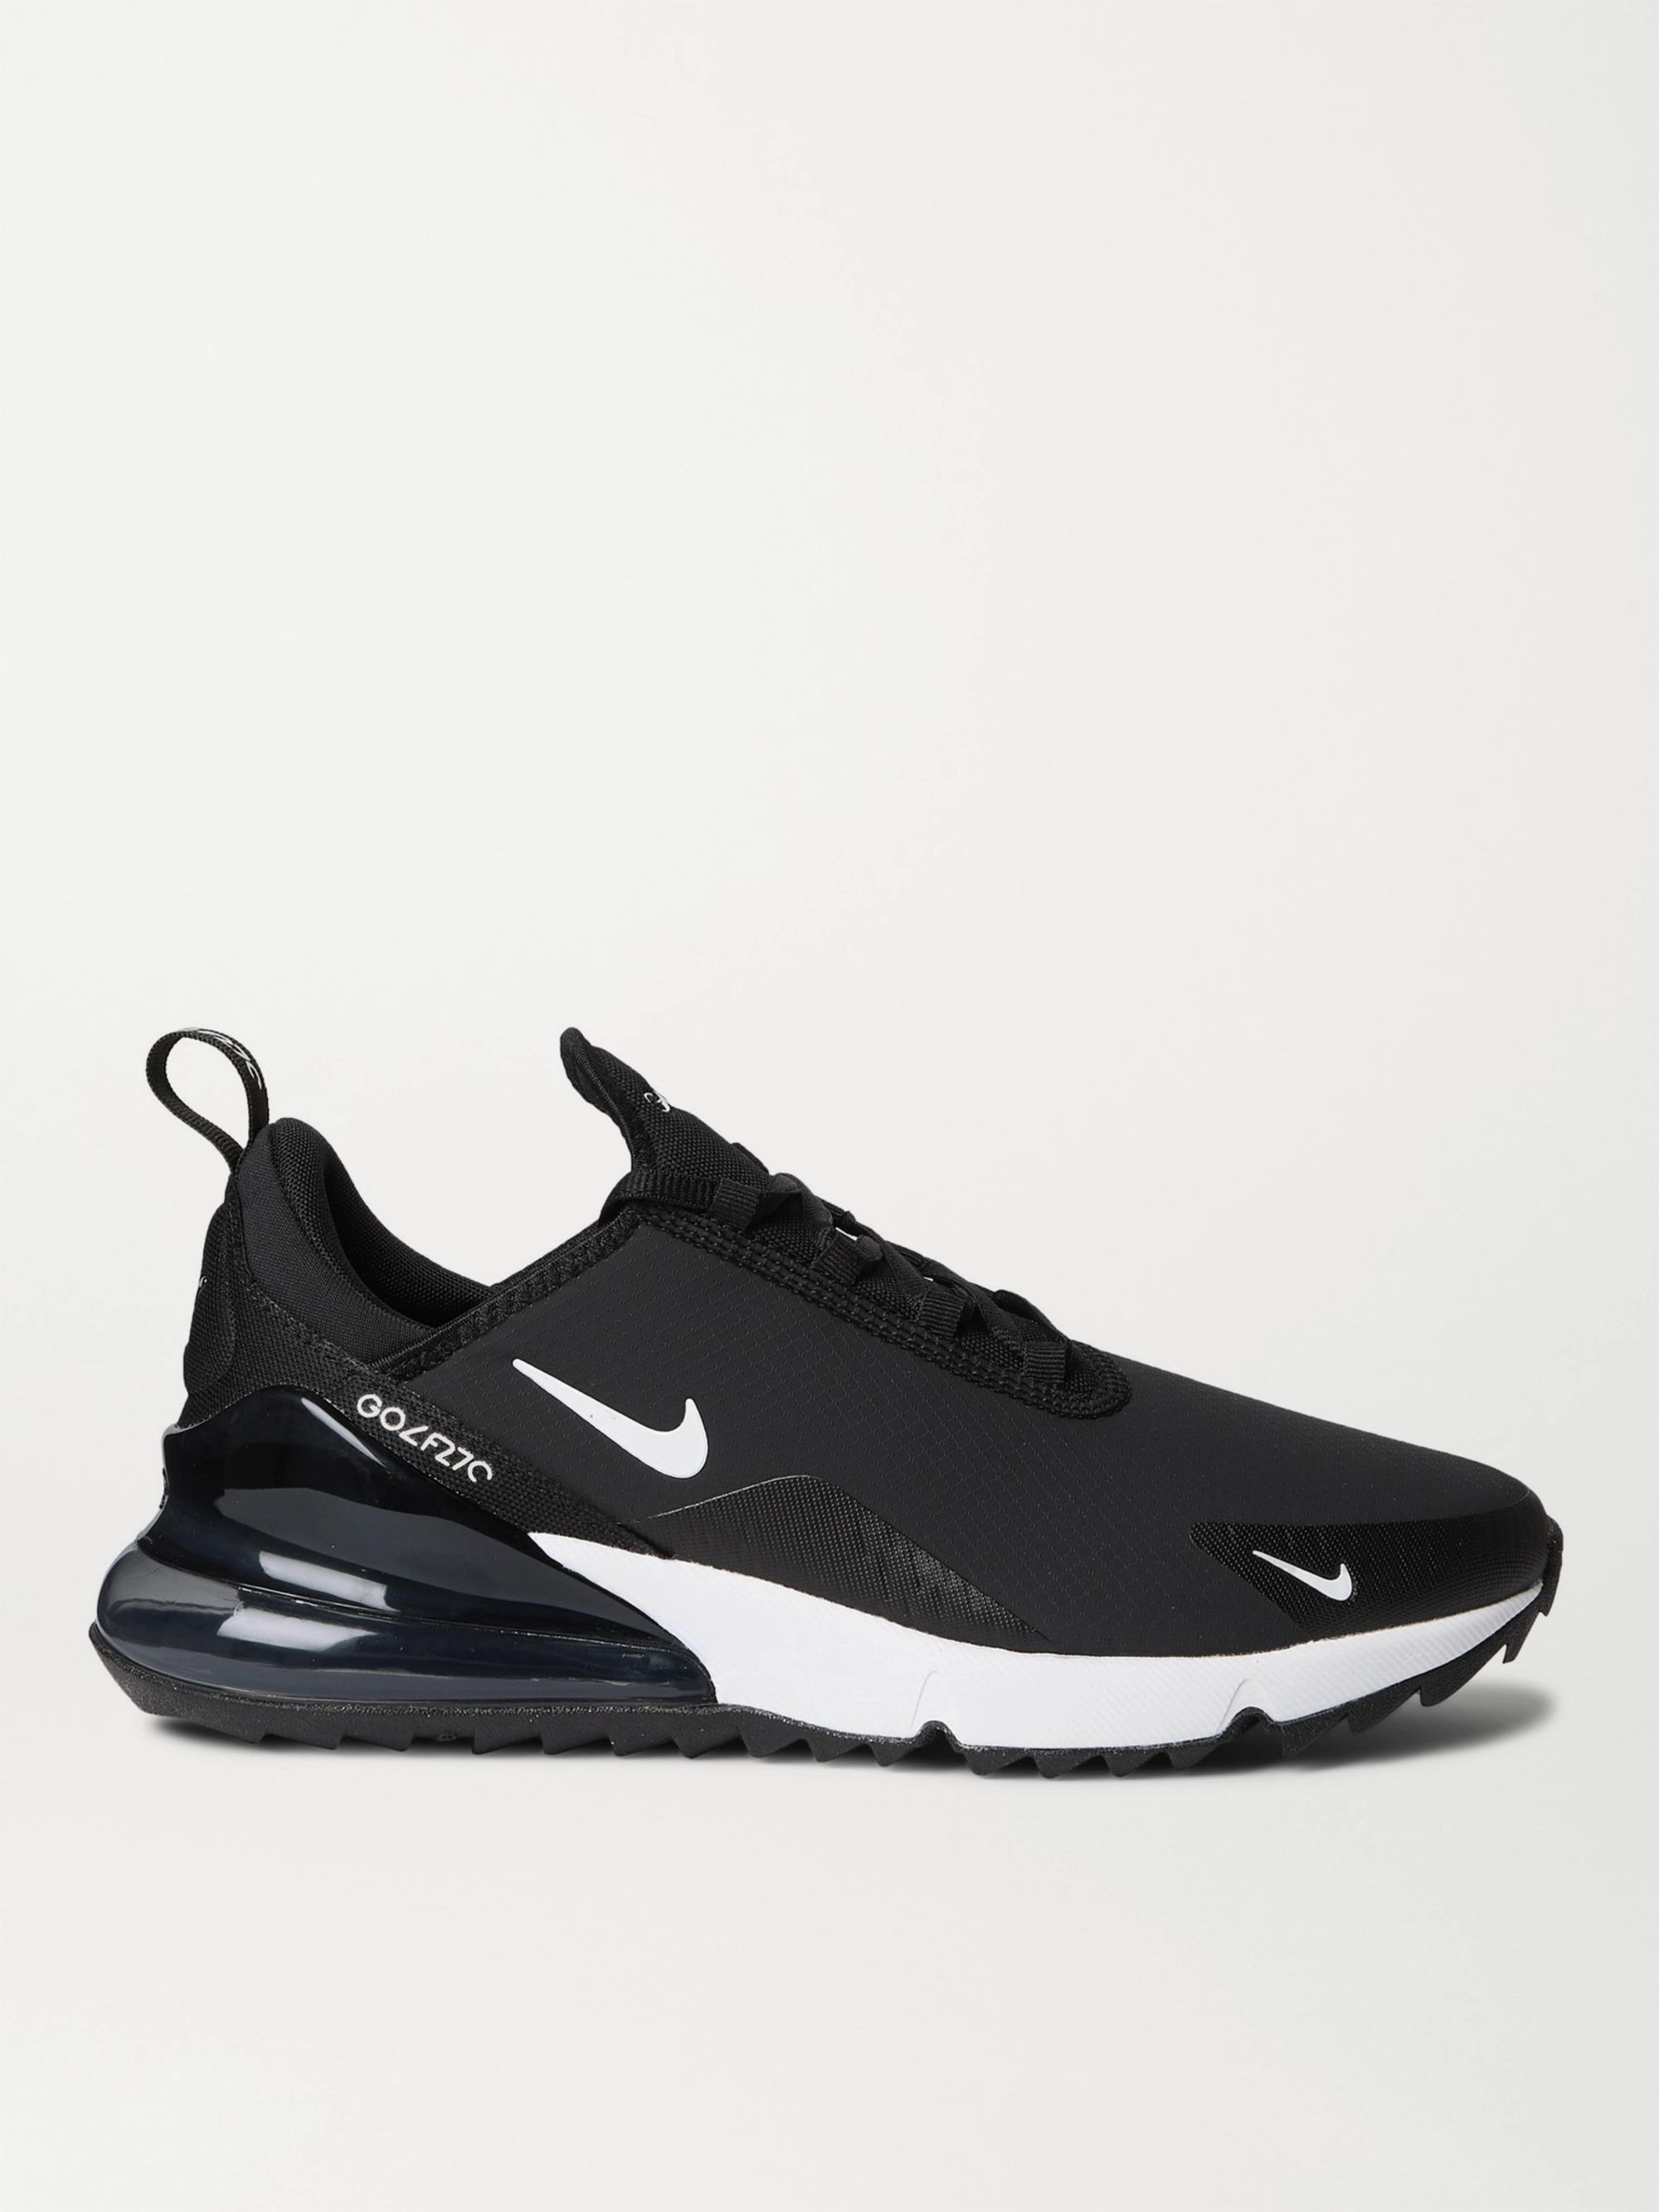 Black Air Max 270 G Rubber Trimmed Ripstop And Mesh Golf Shoes Nike Golf Mr Porter